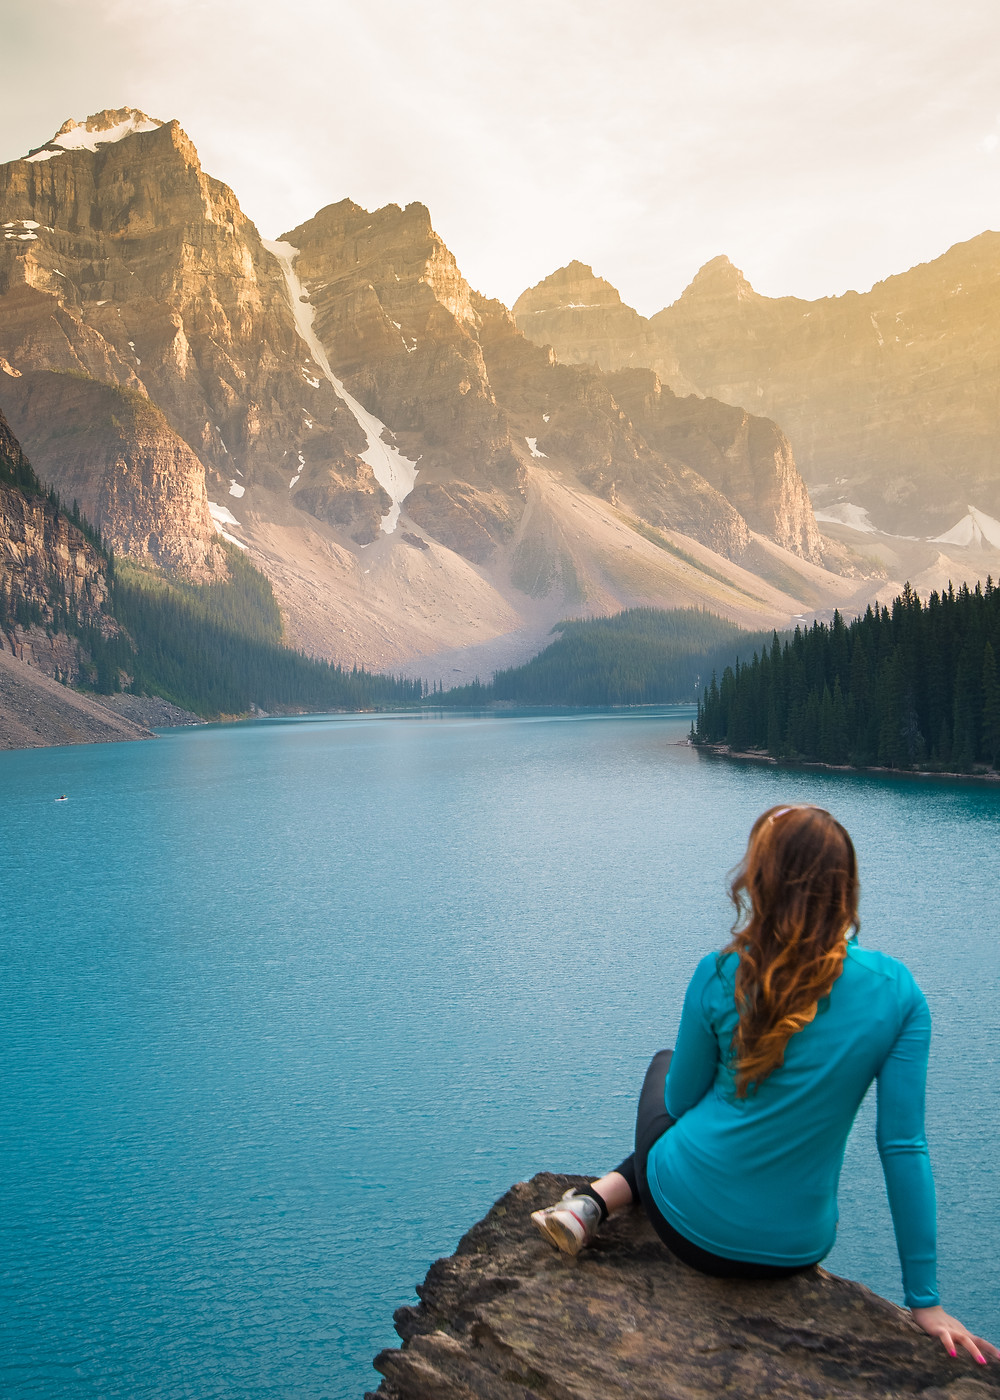 A girl sitting on a rock watchin the sunset at Moraine Lake in Banff, Canada.